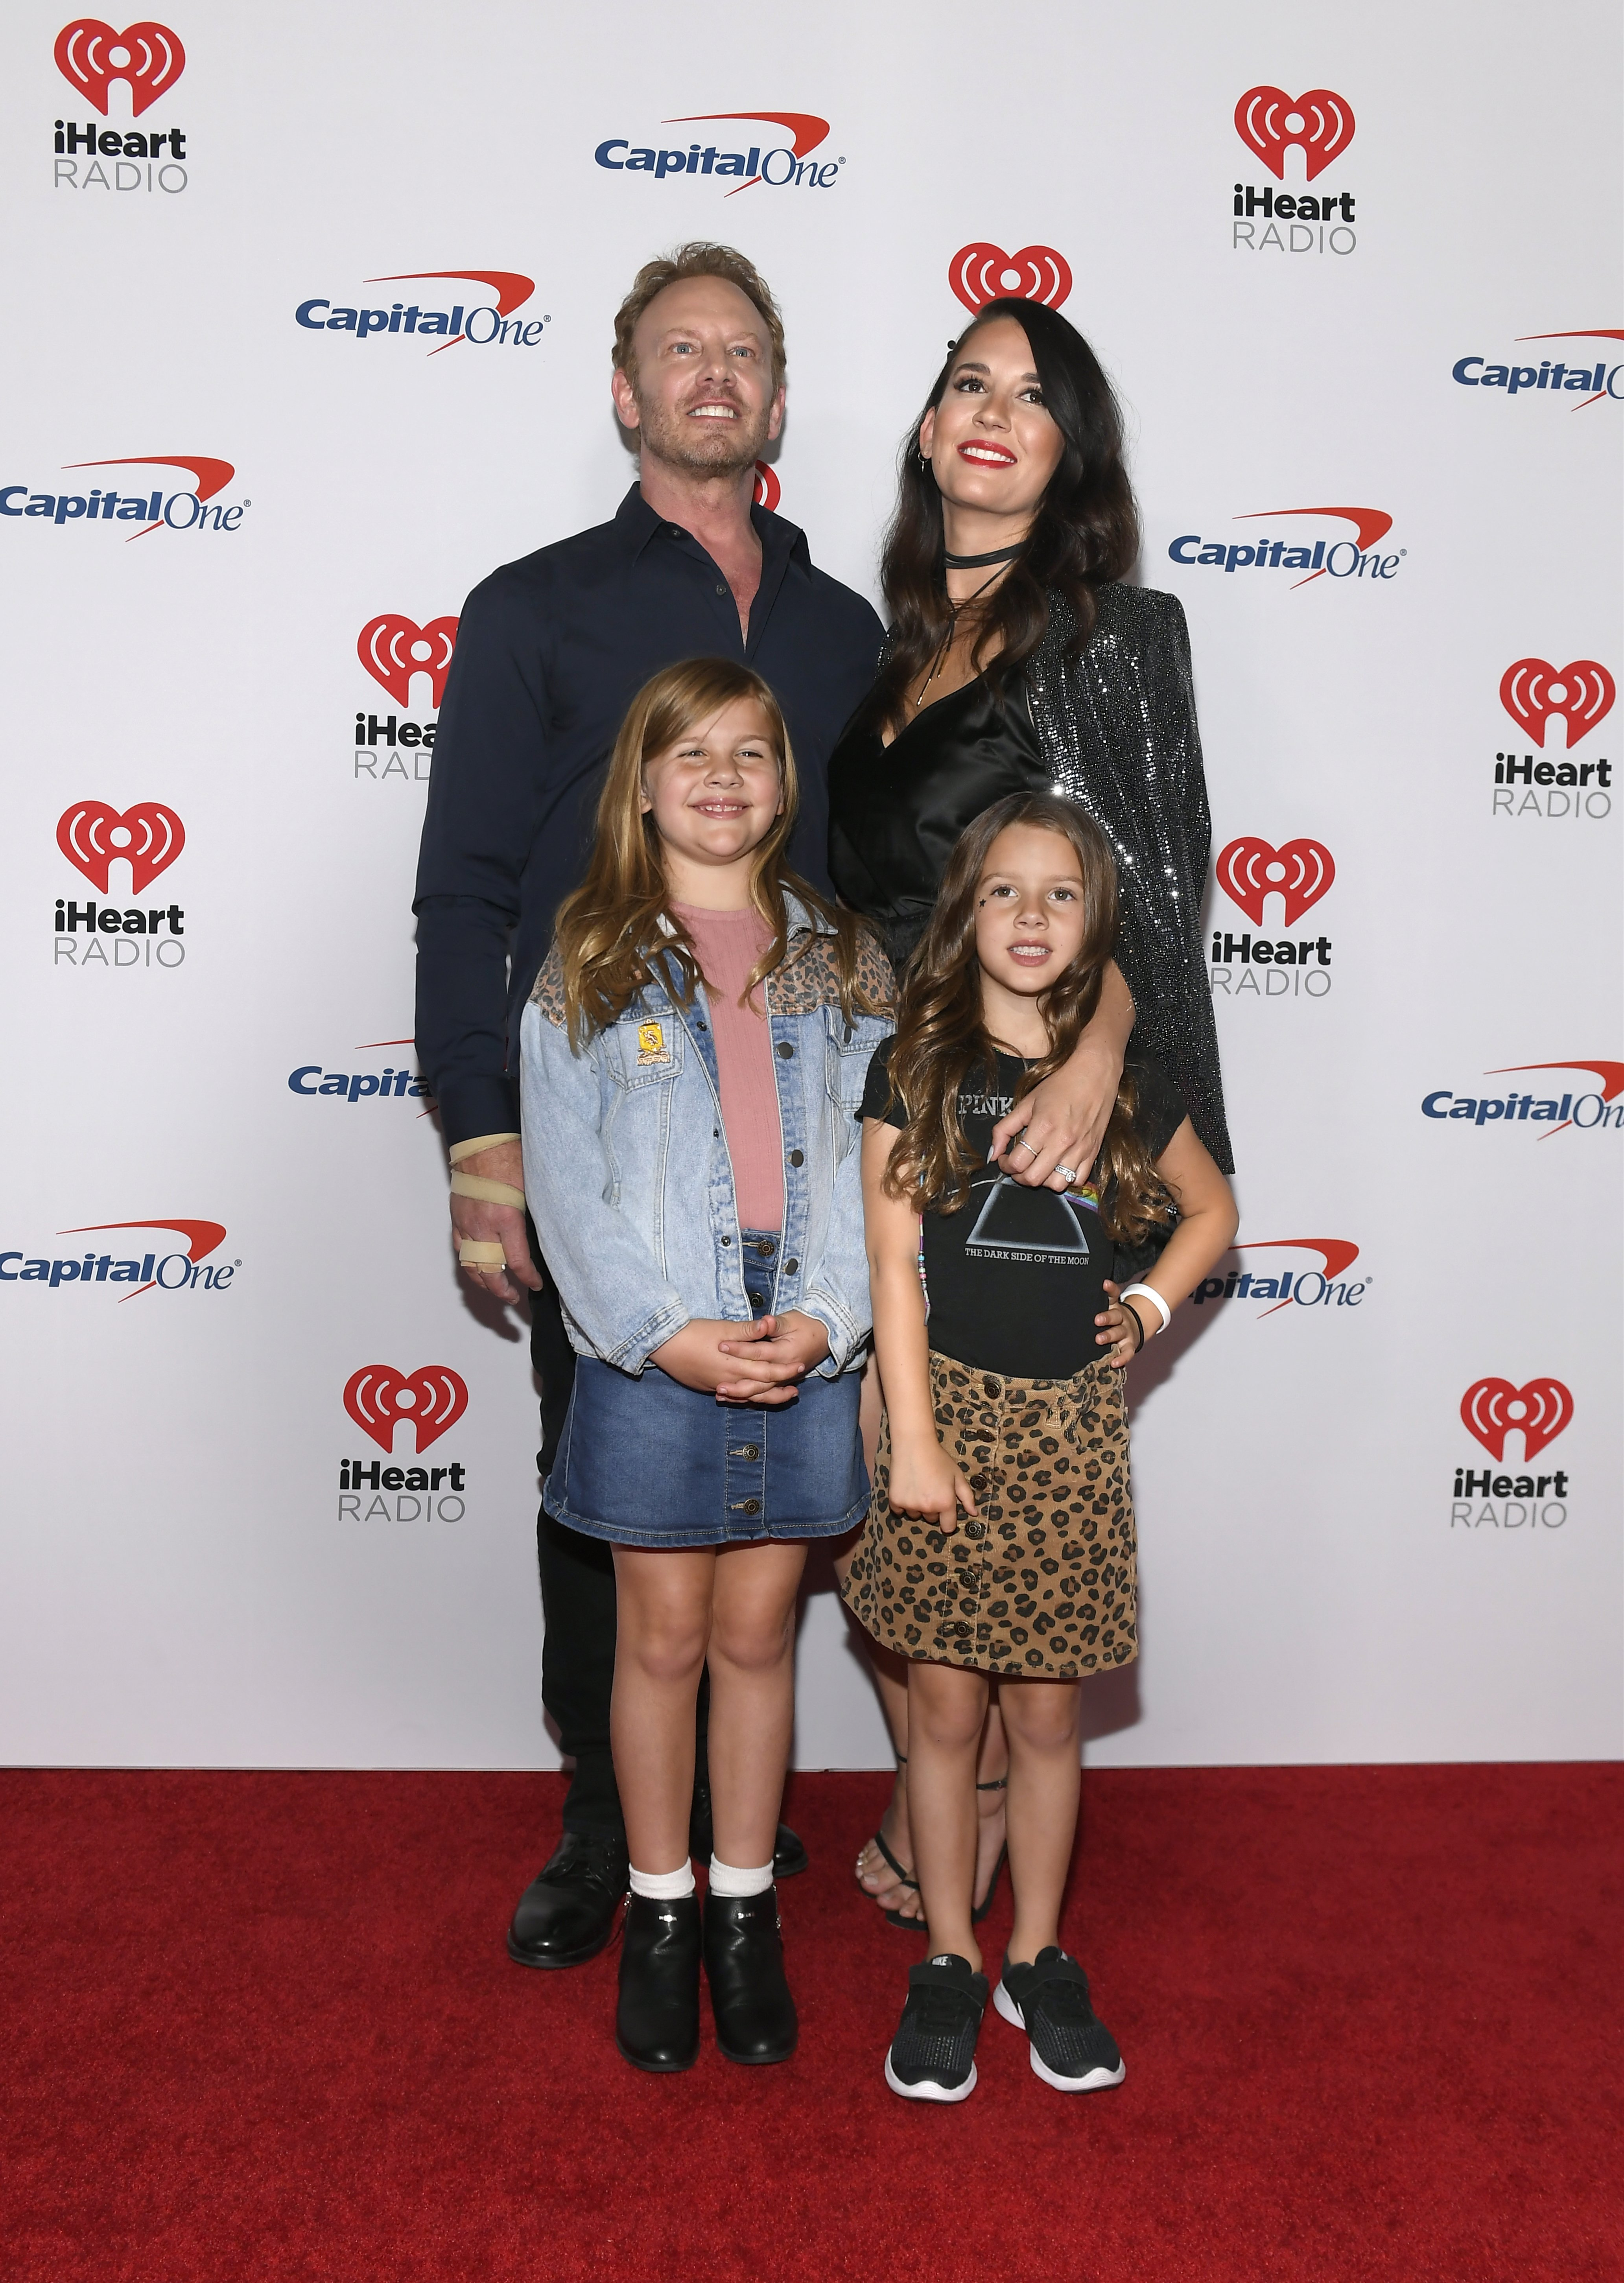 Ian Ziering, Erin Ludwig, Loren Ziering and Penna Ziering attend the iHeart Radio Music Festival on September 20, 2019, in Las Vegas, Nevada. | Source: Getty Images.